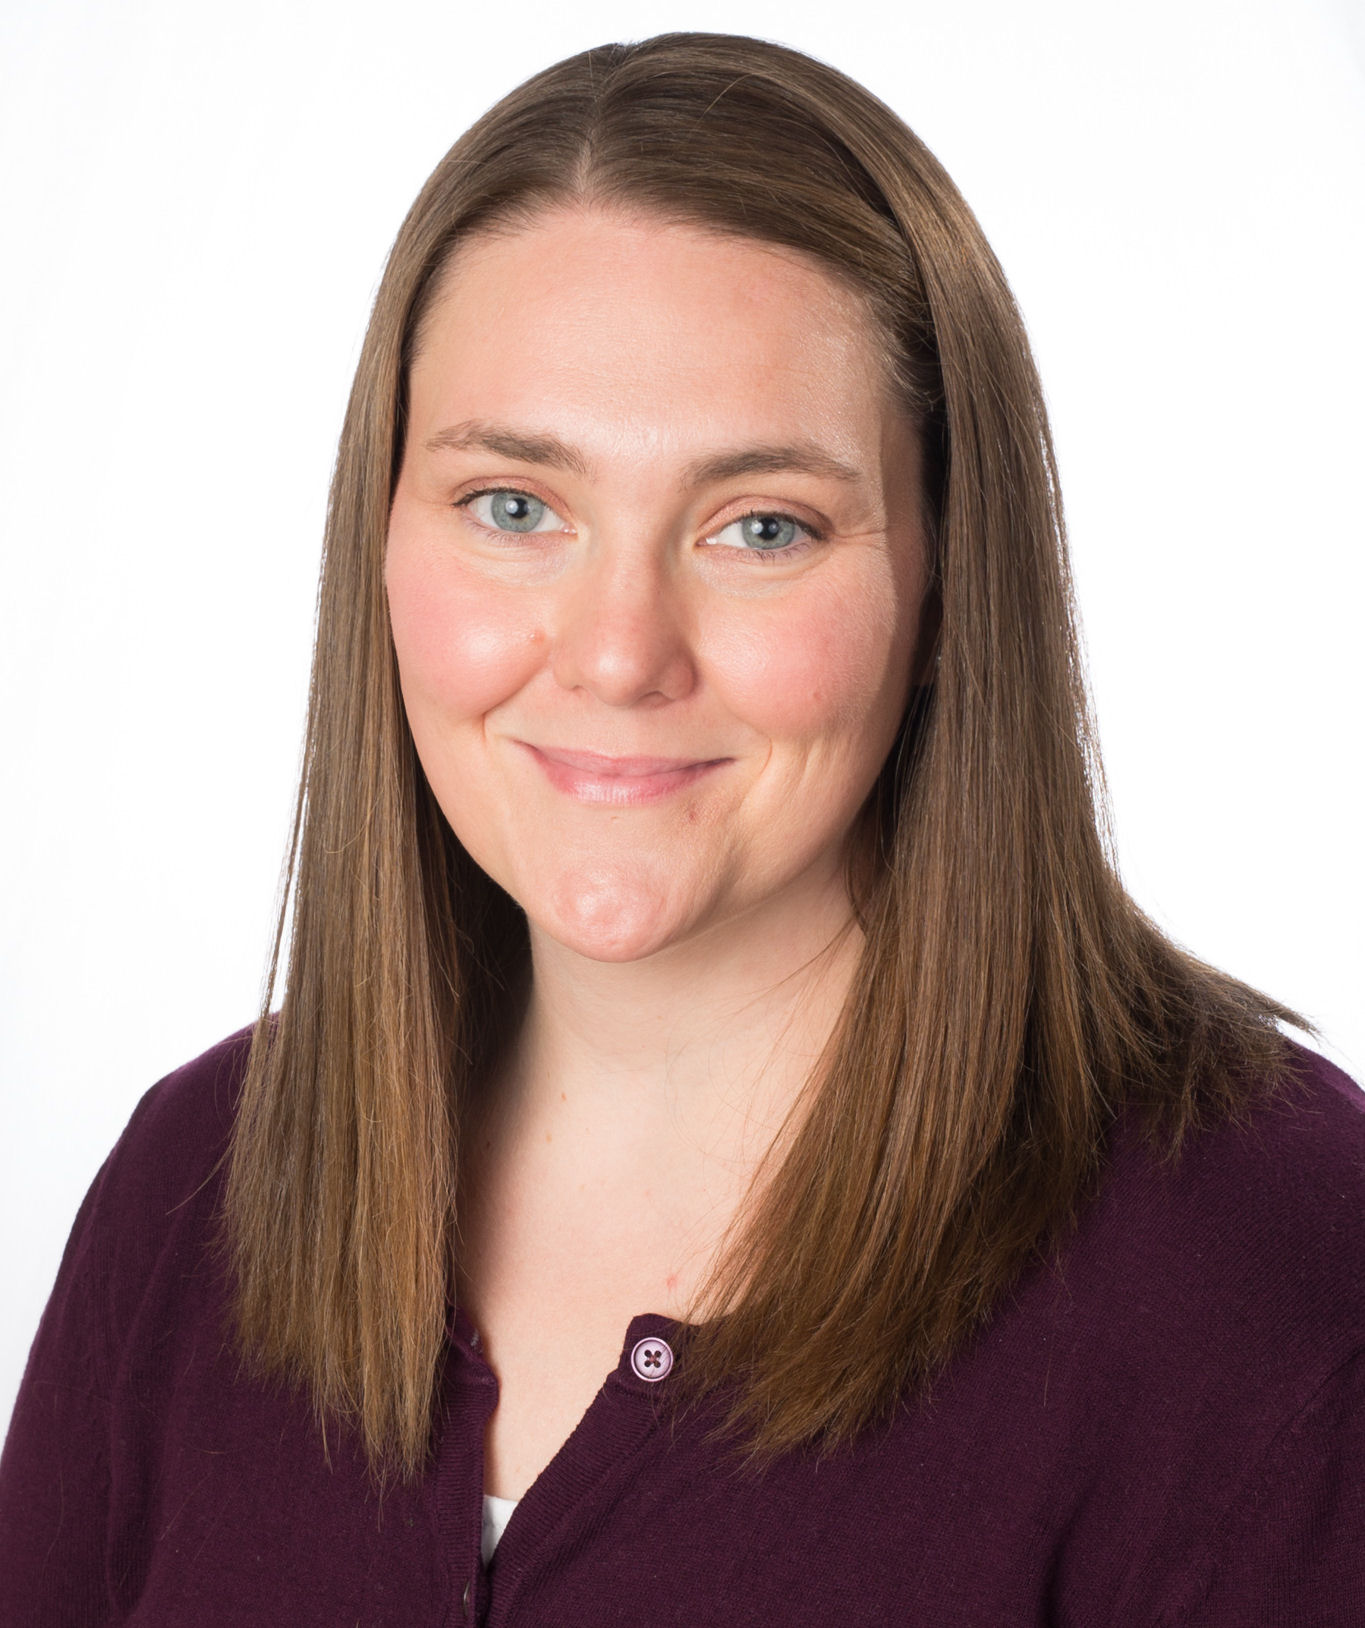 valuation laura martin Laura martin: real options and the cable industry case analysis, laura martin: real options and the cable industry case study solution, laura martin: real options and the cable industry xls.